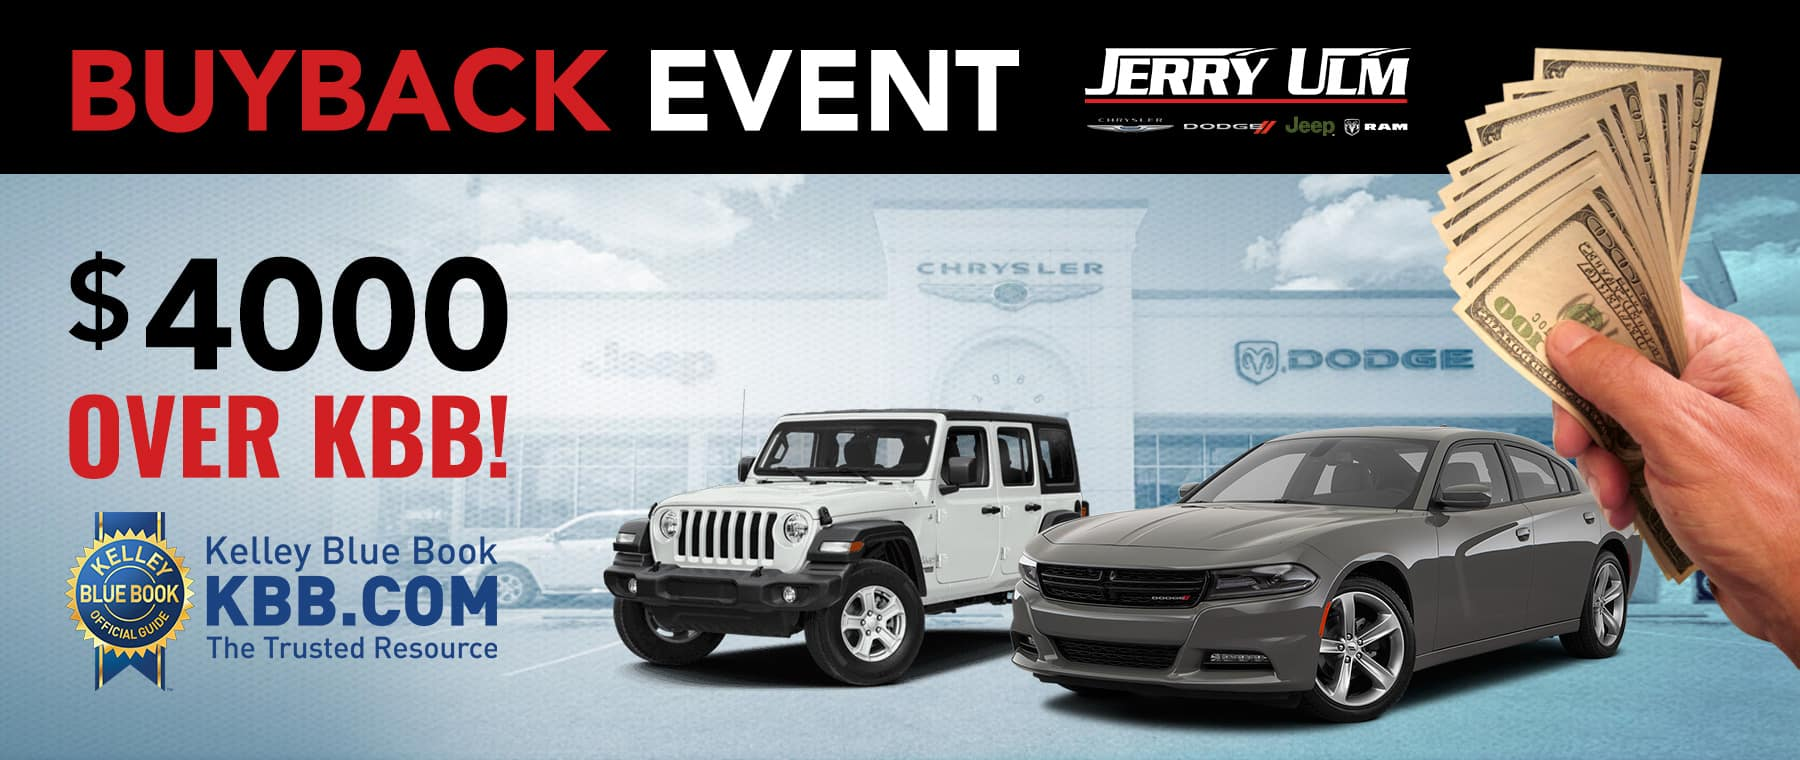 Kelley Blue Book Jeep >> Buyback Event Jerry Ulm Chrysler Dodge Jeep Ram Tampa